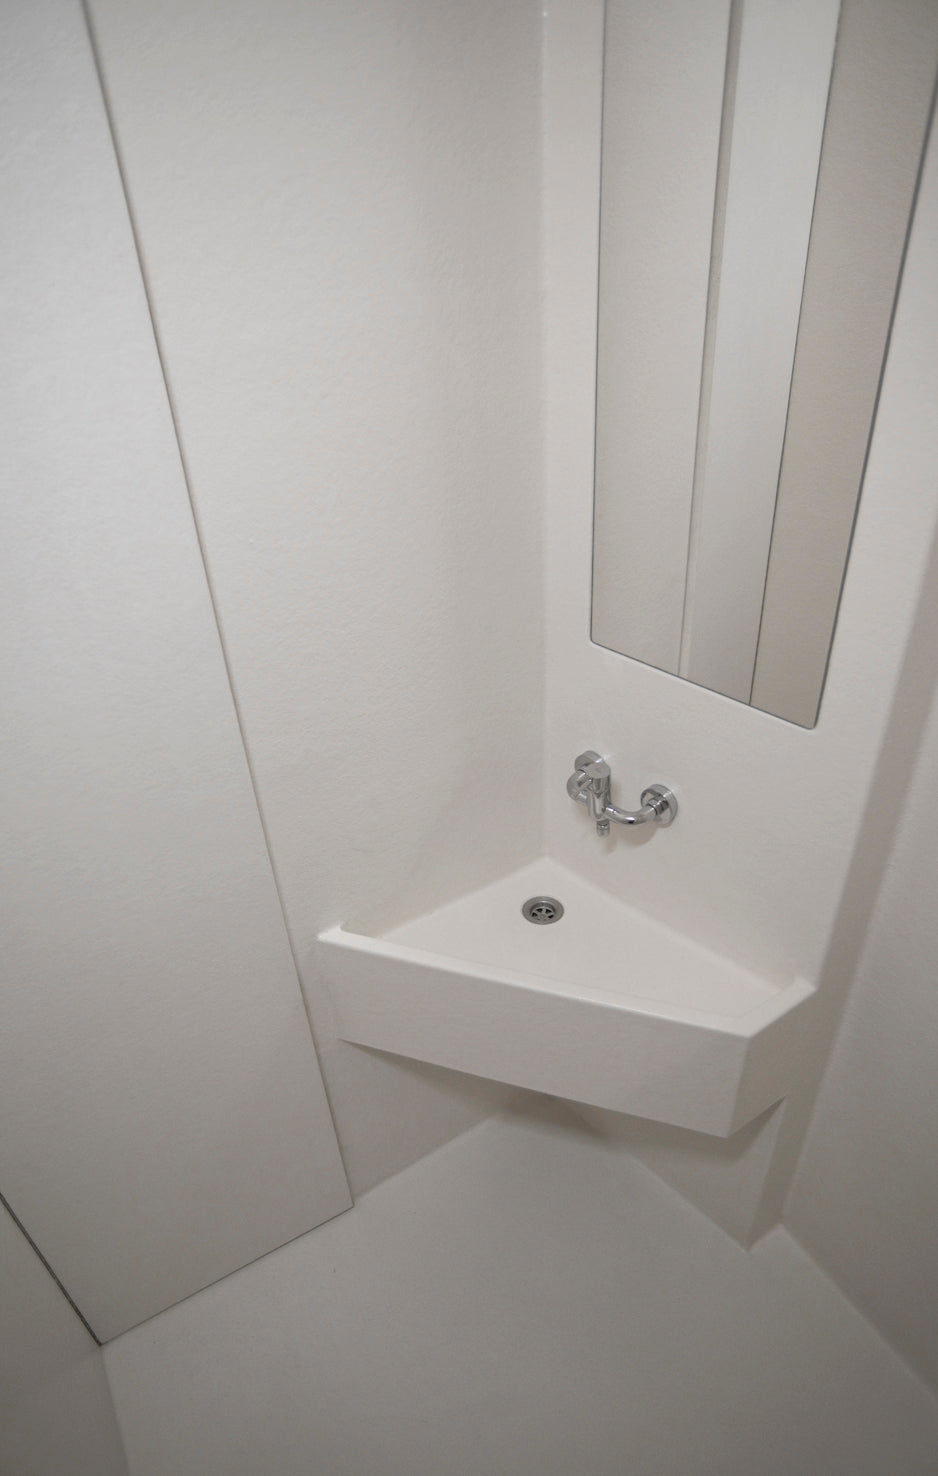 Interior solution | Small shower cubicle